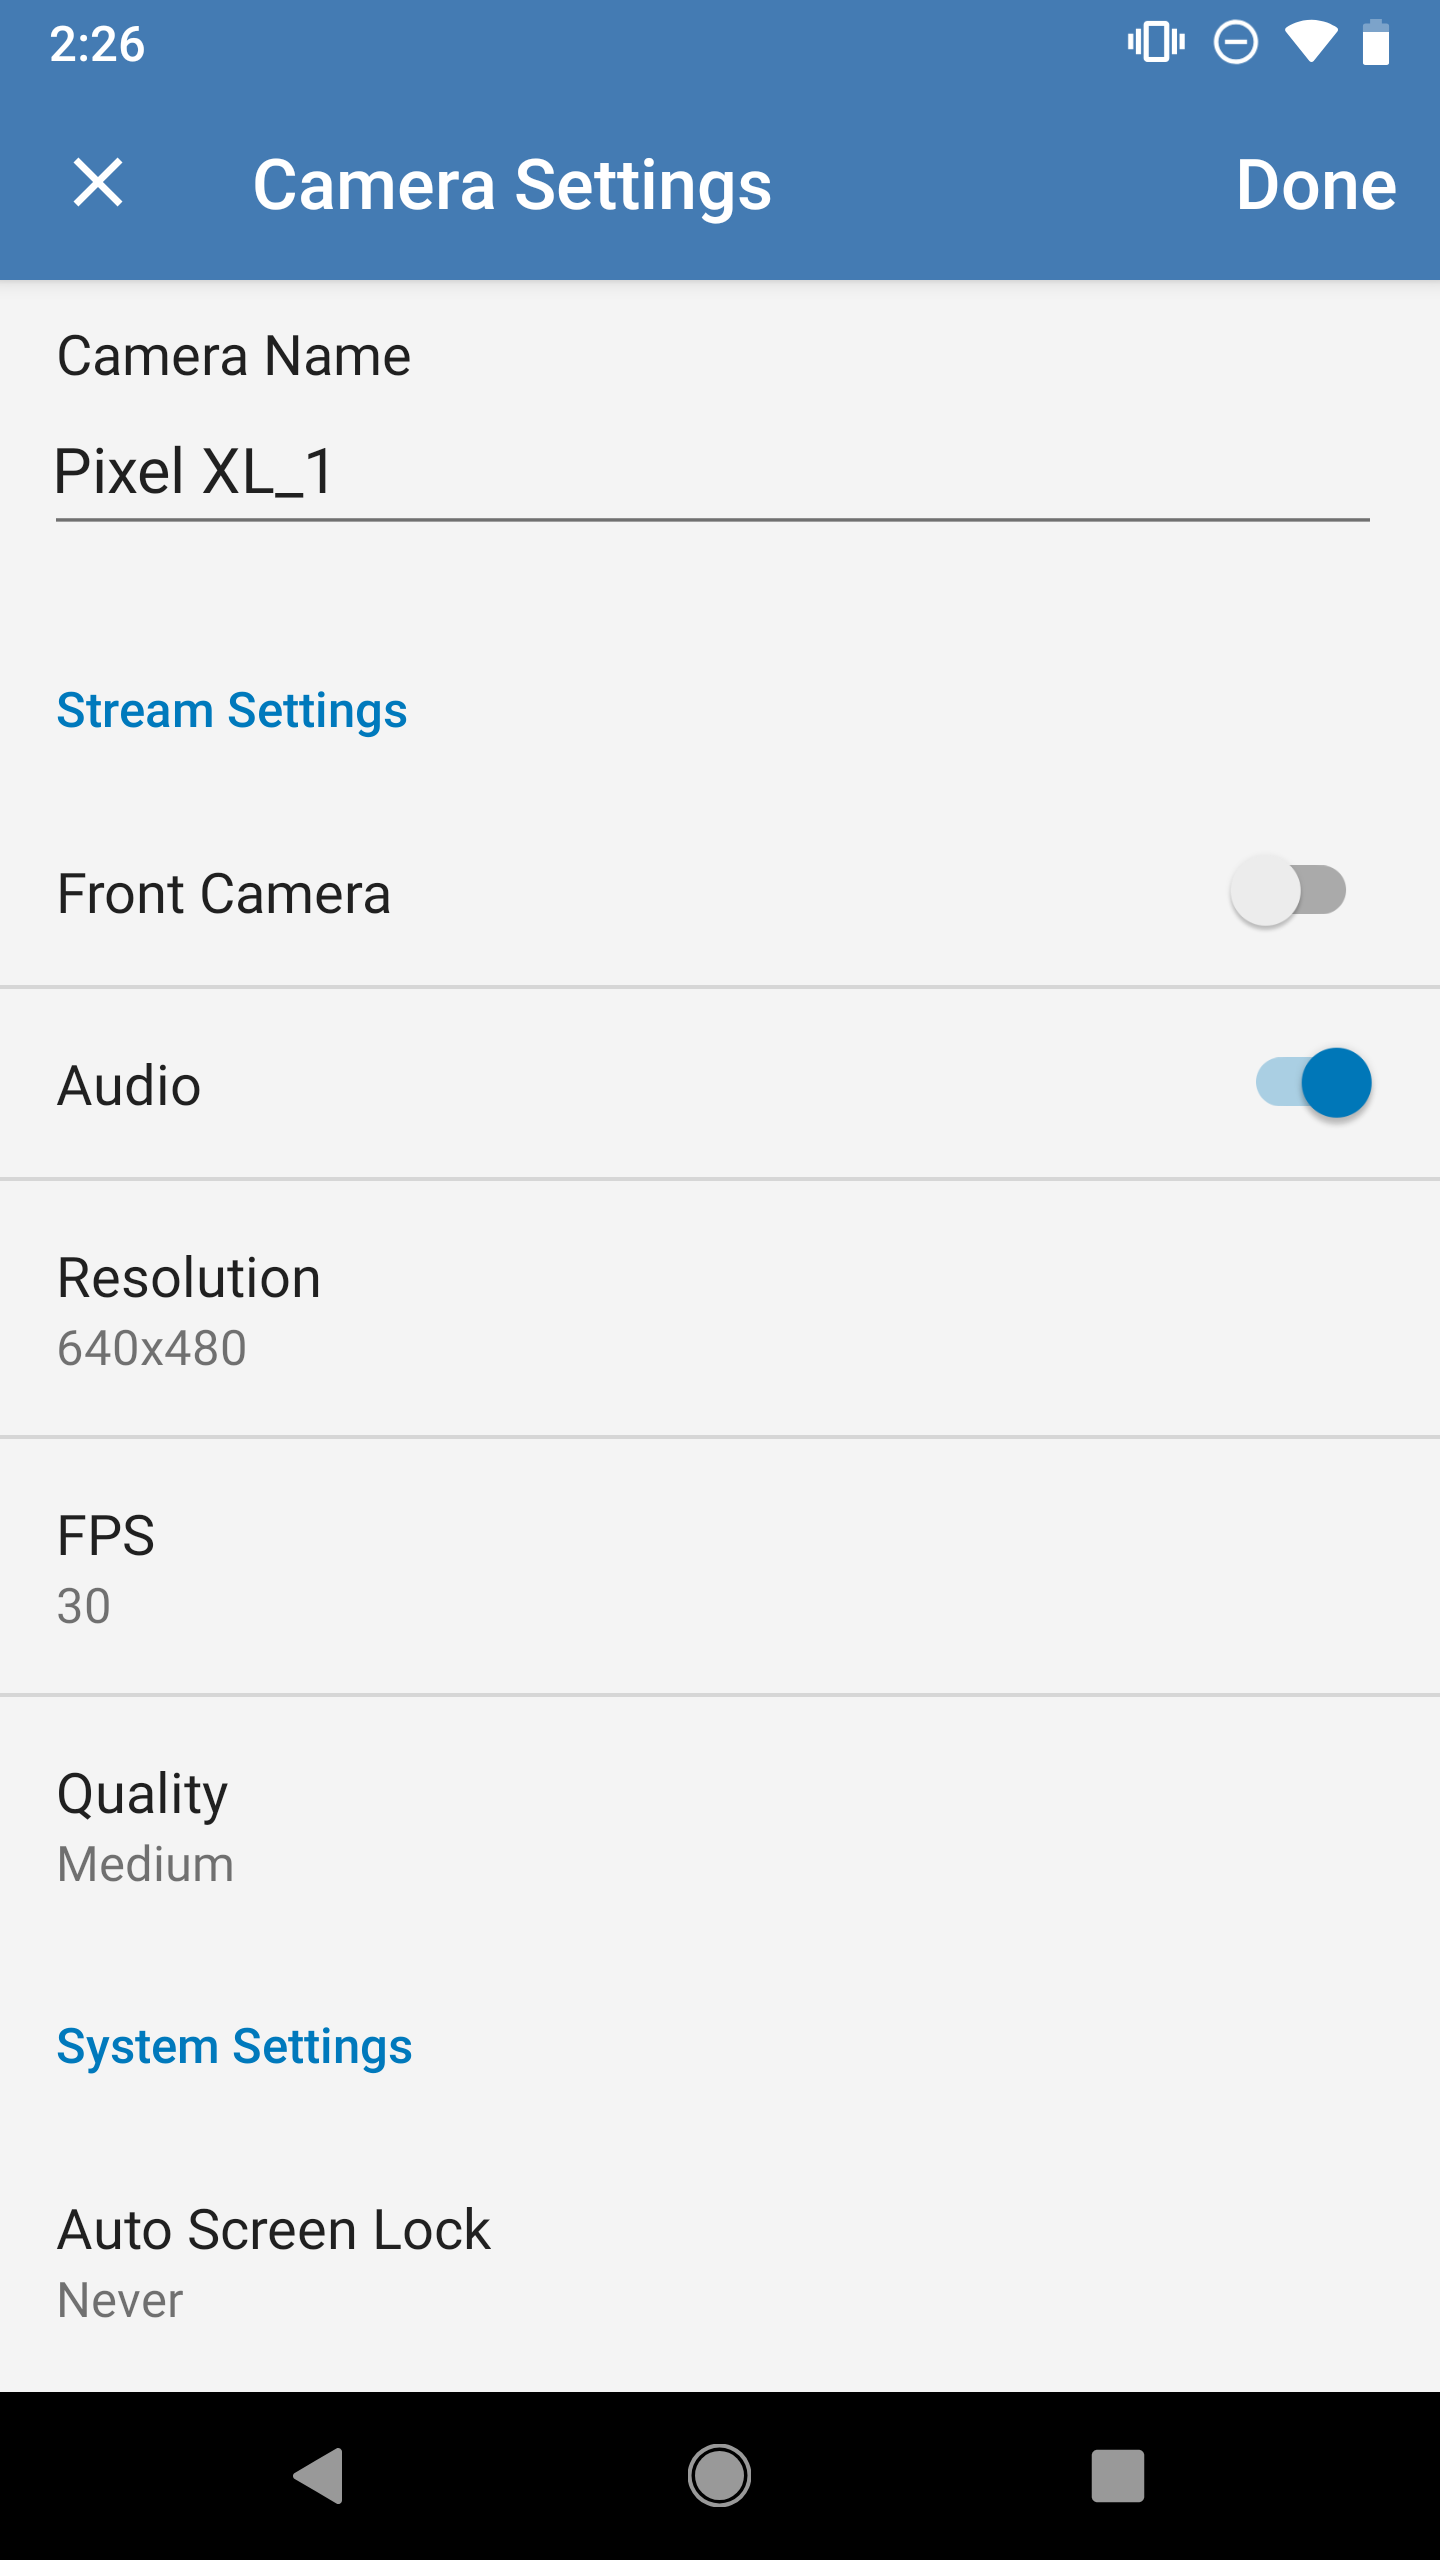 Synology LiveCam review: Turns old phones into security